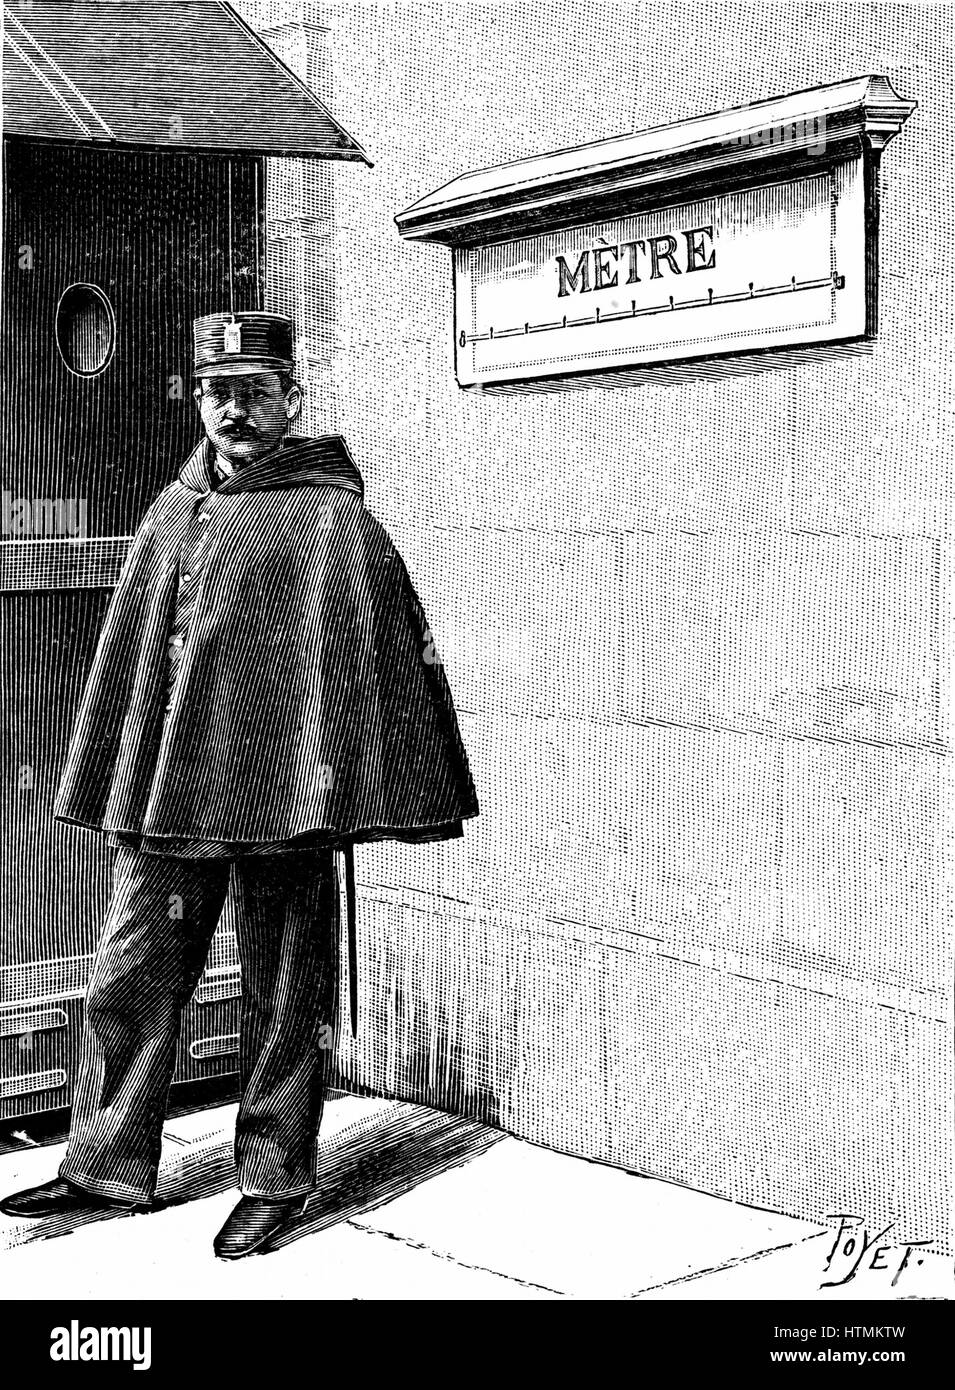 Standard Metre in the Petit Luxembourg, Paris. Set up when Metrification introduced by the French National Assembly - Stock Image